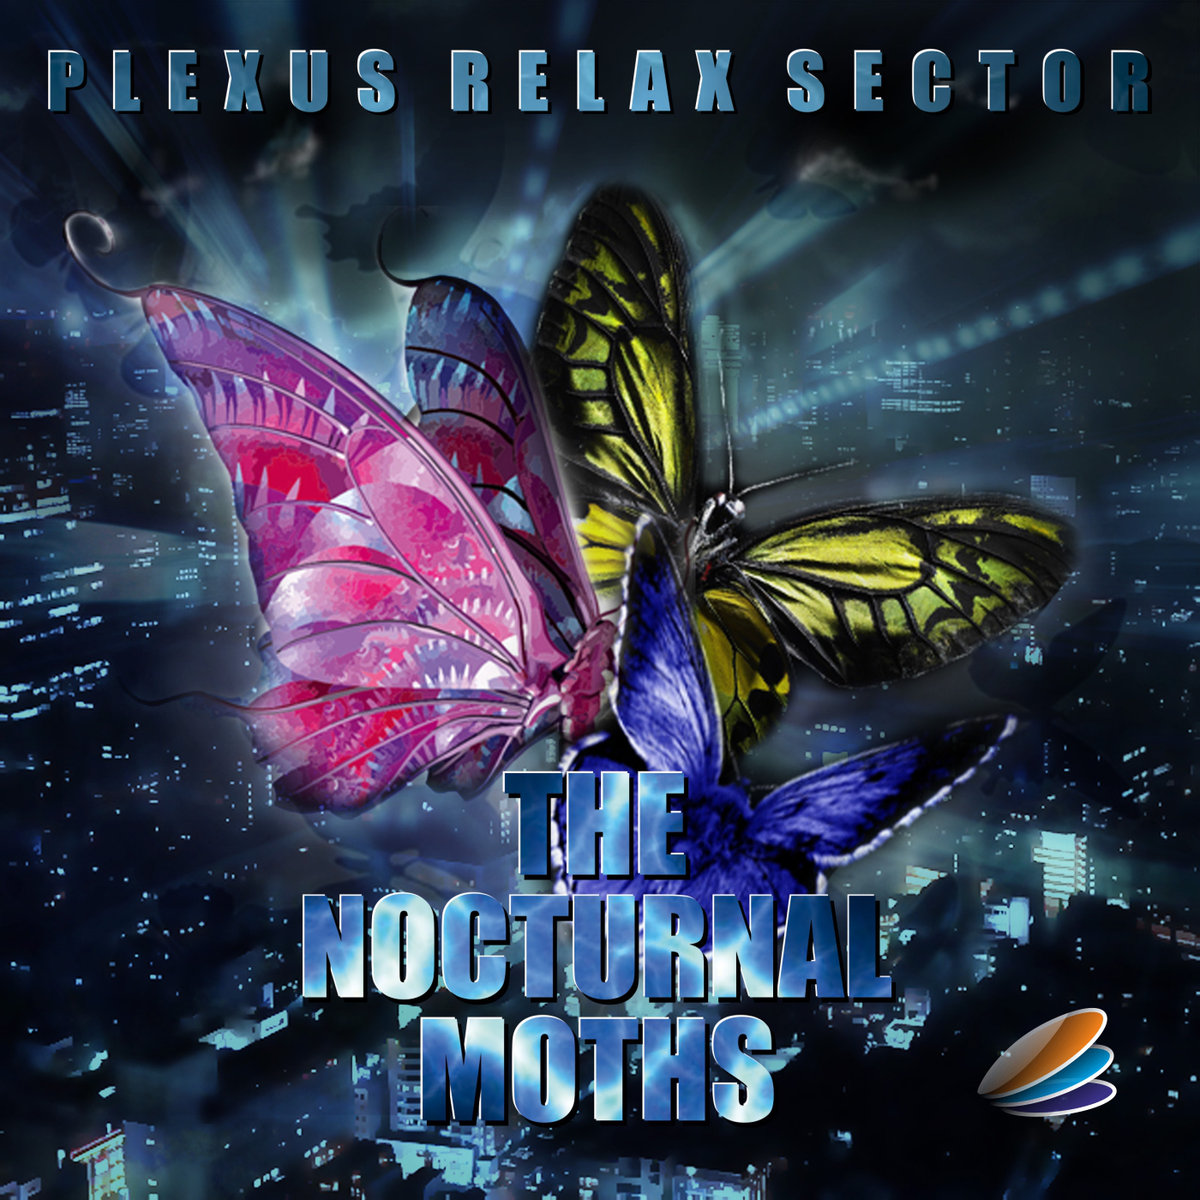 Plexus Relax Sector - The Nocturnal Moths